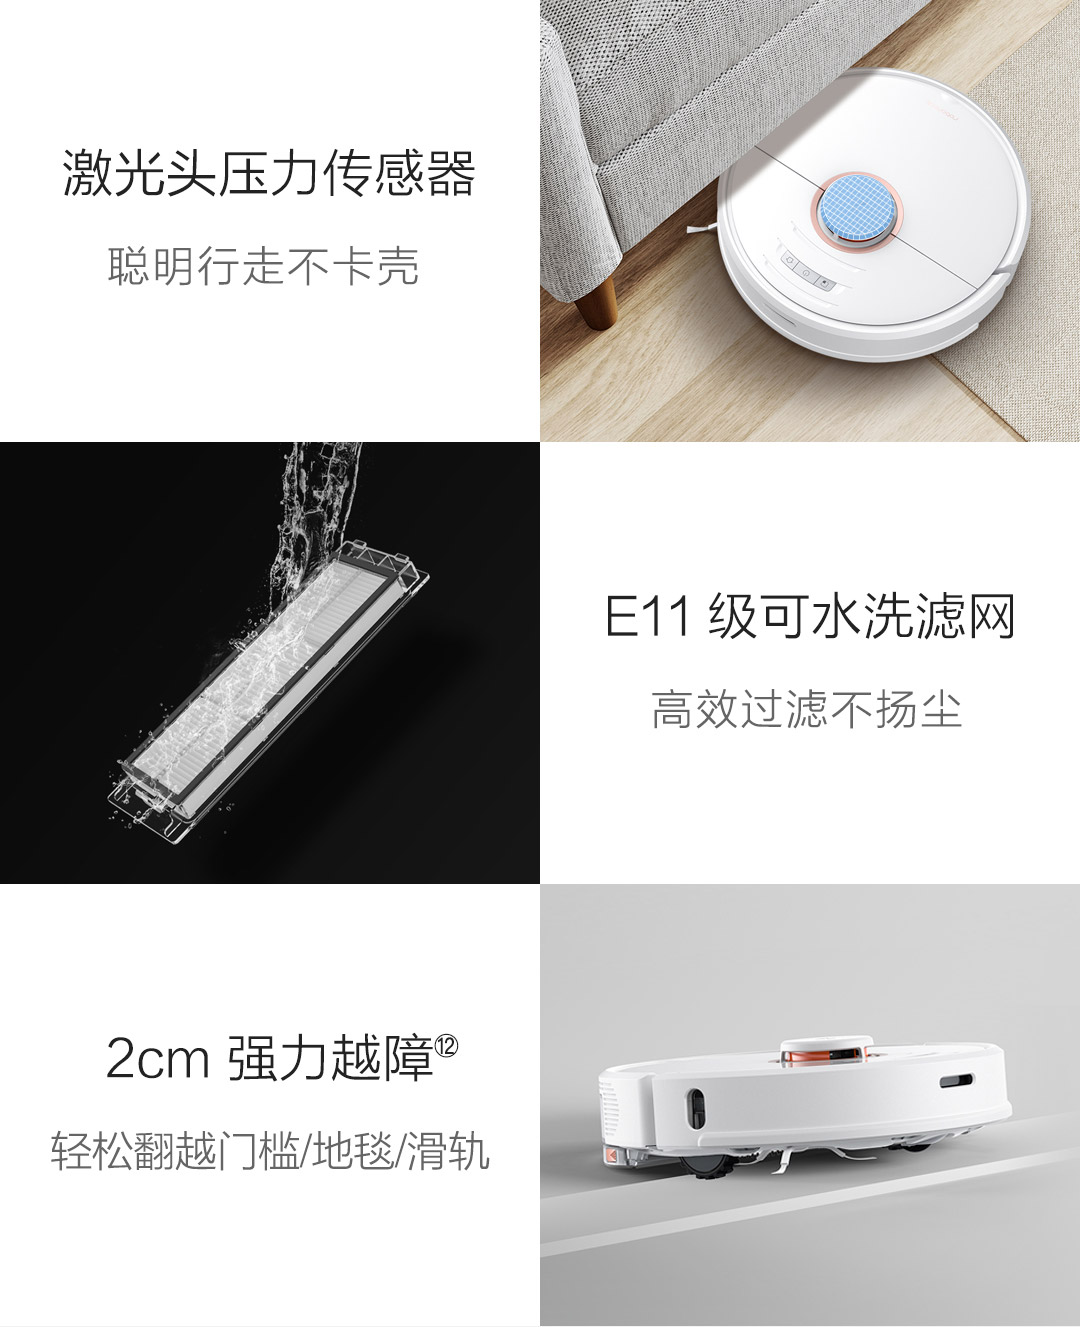 product_奇妙_石头扫拖一体机器人T7